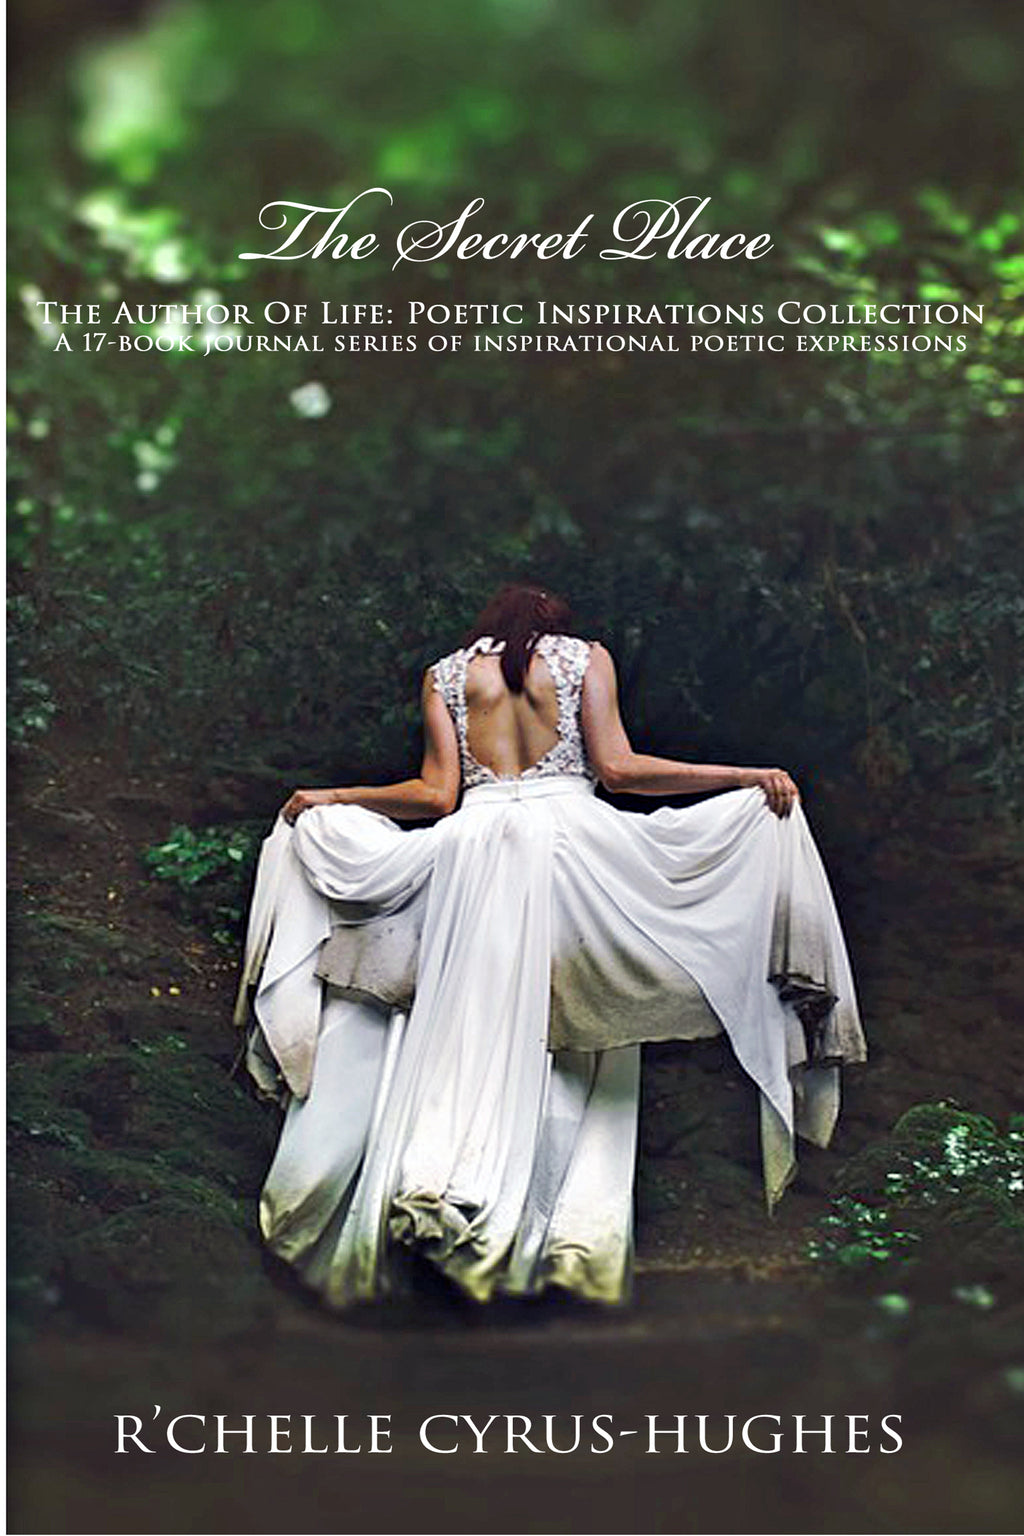 The Secret Place - Author Of Life: Poetic Inspirations Collection